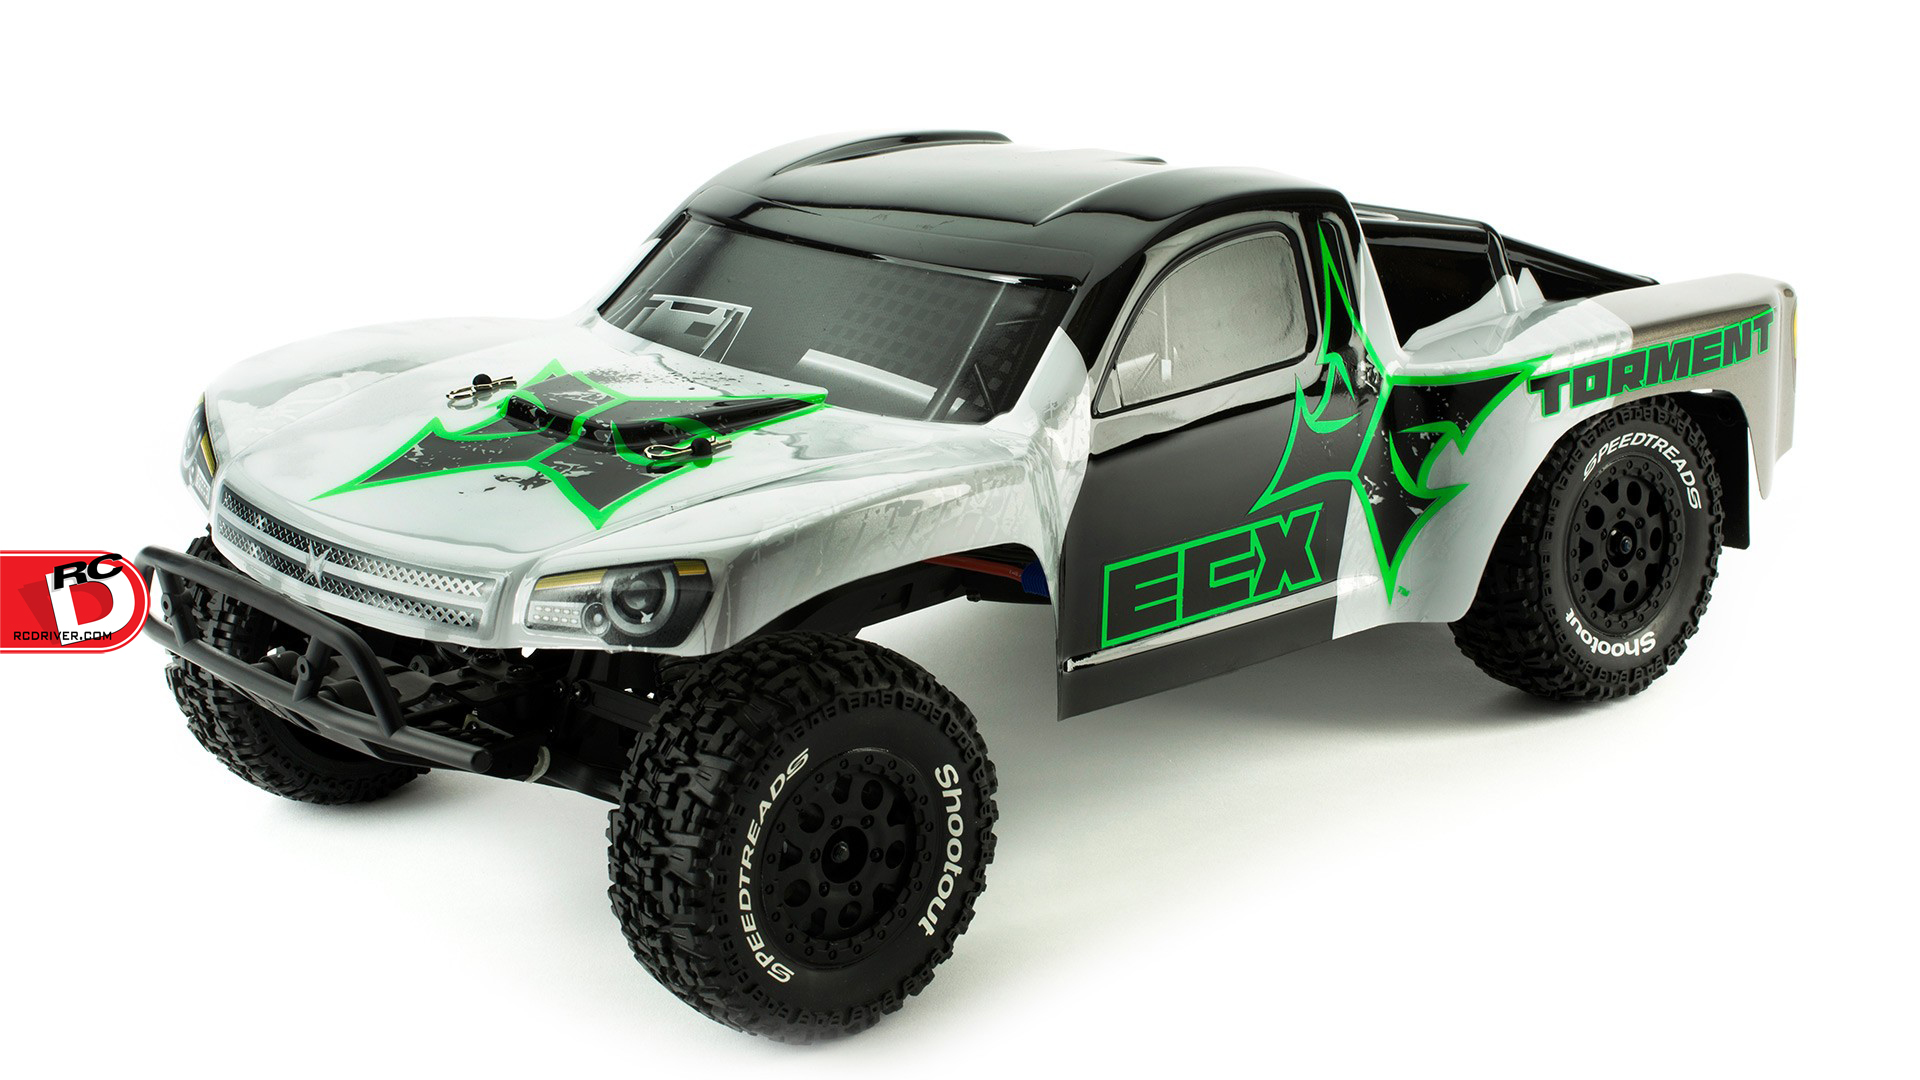 Ecx 2wd Vehicles Get The 2 1 Treatment